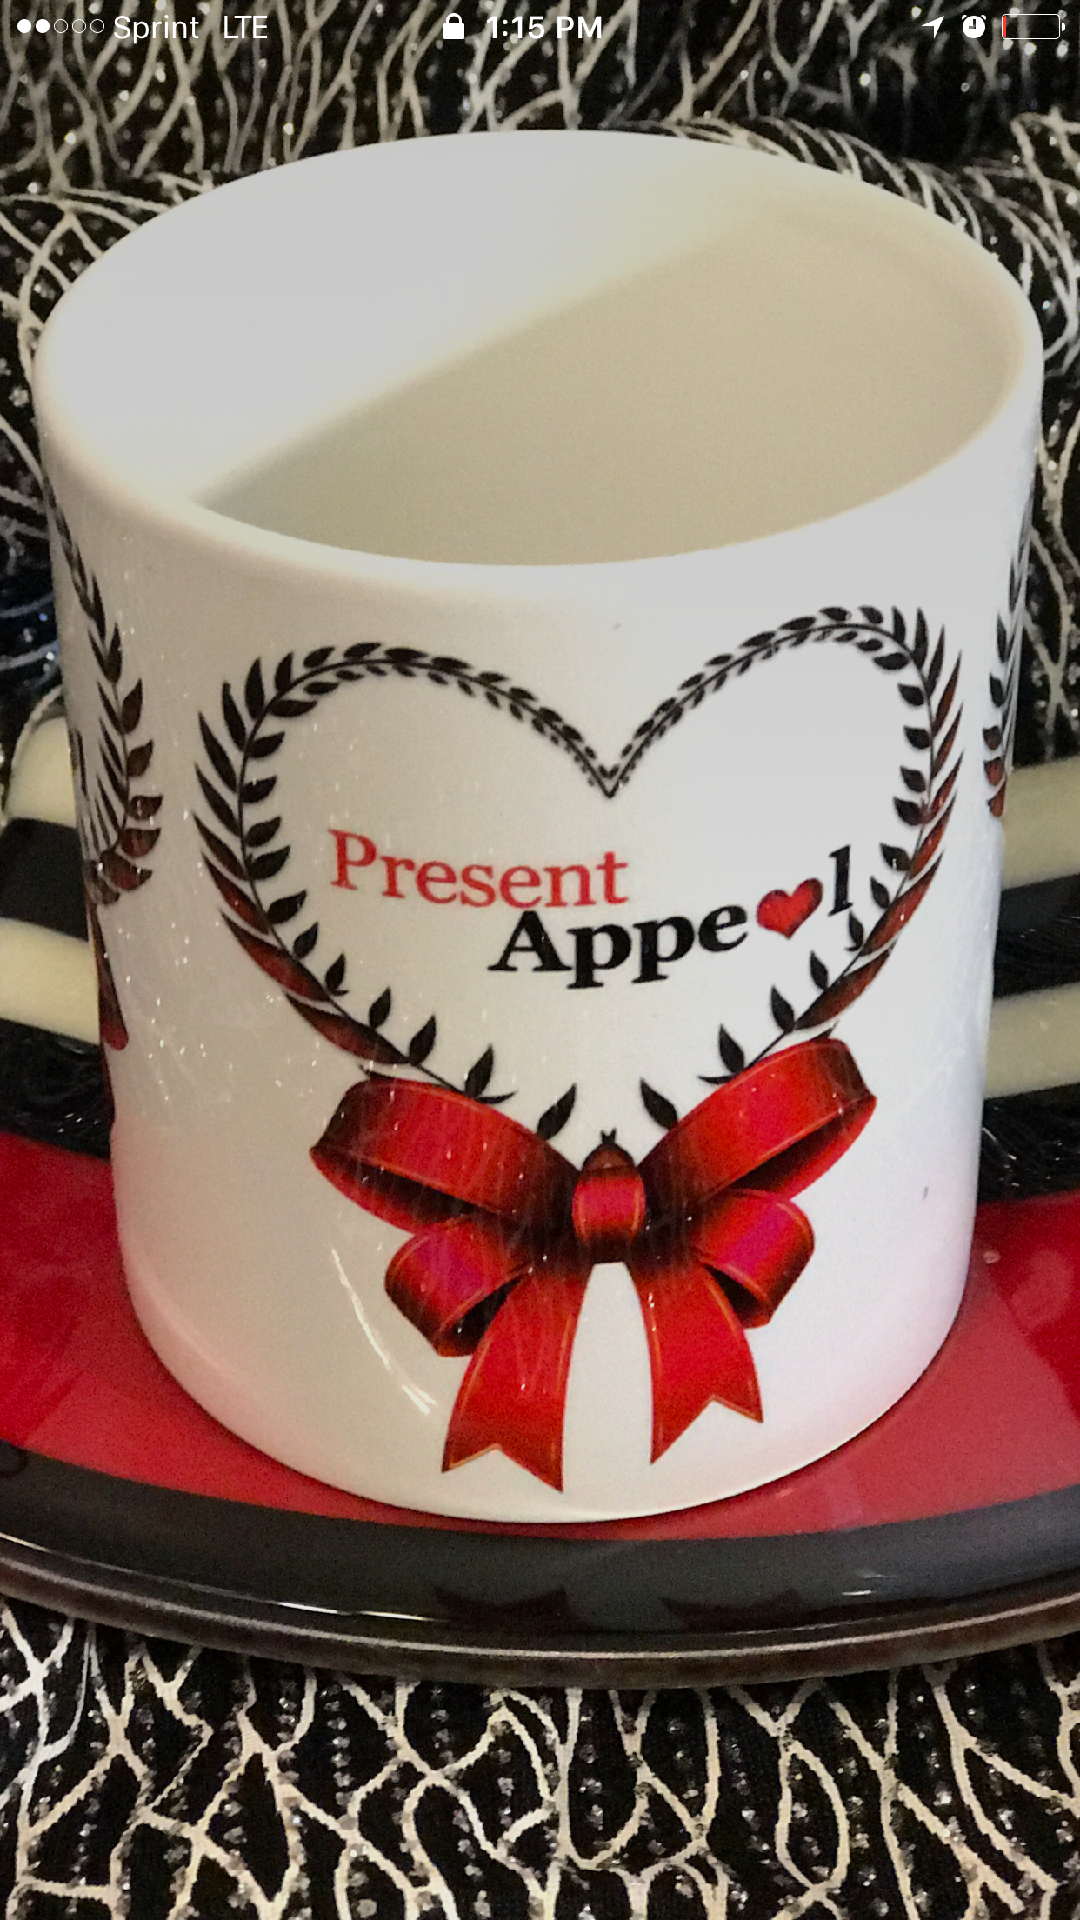 Present Appeal Brand Mug with Heart Logo in 2020 Branded